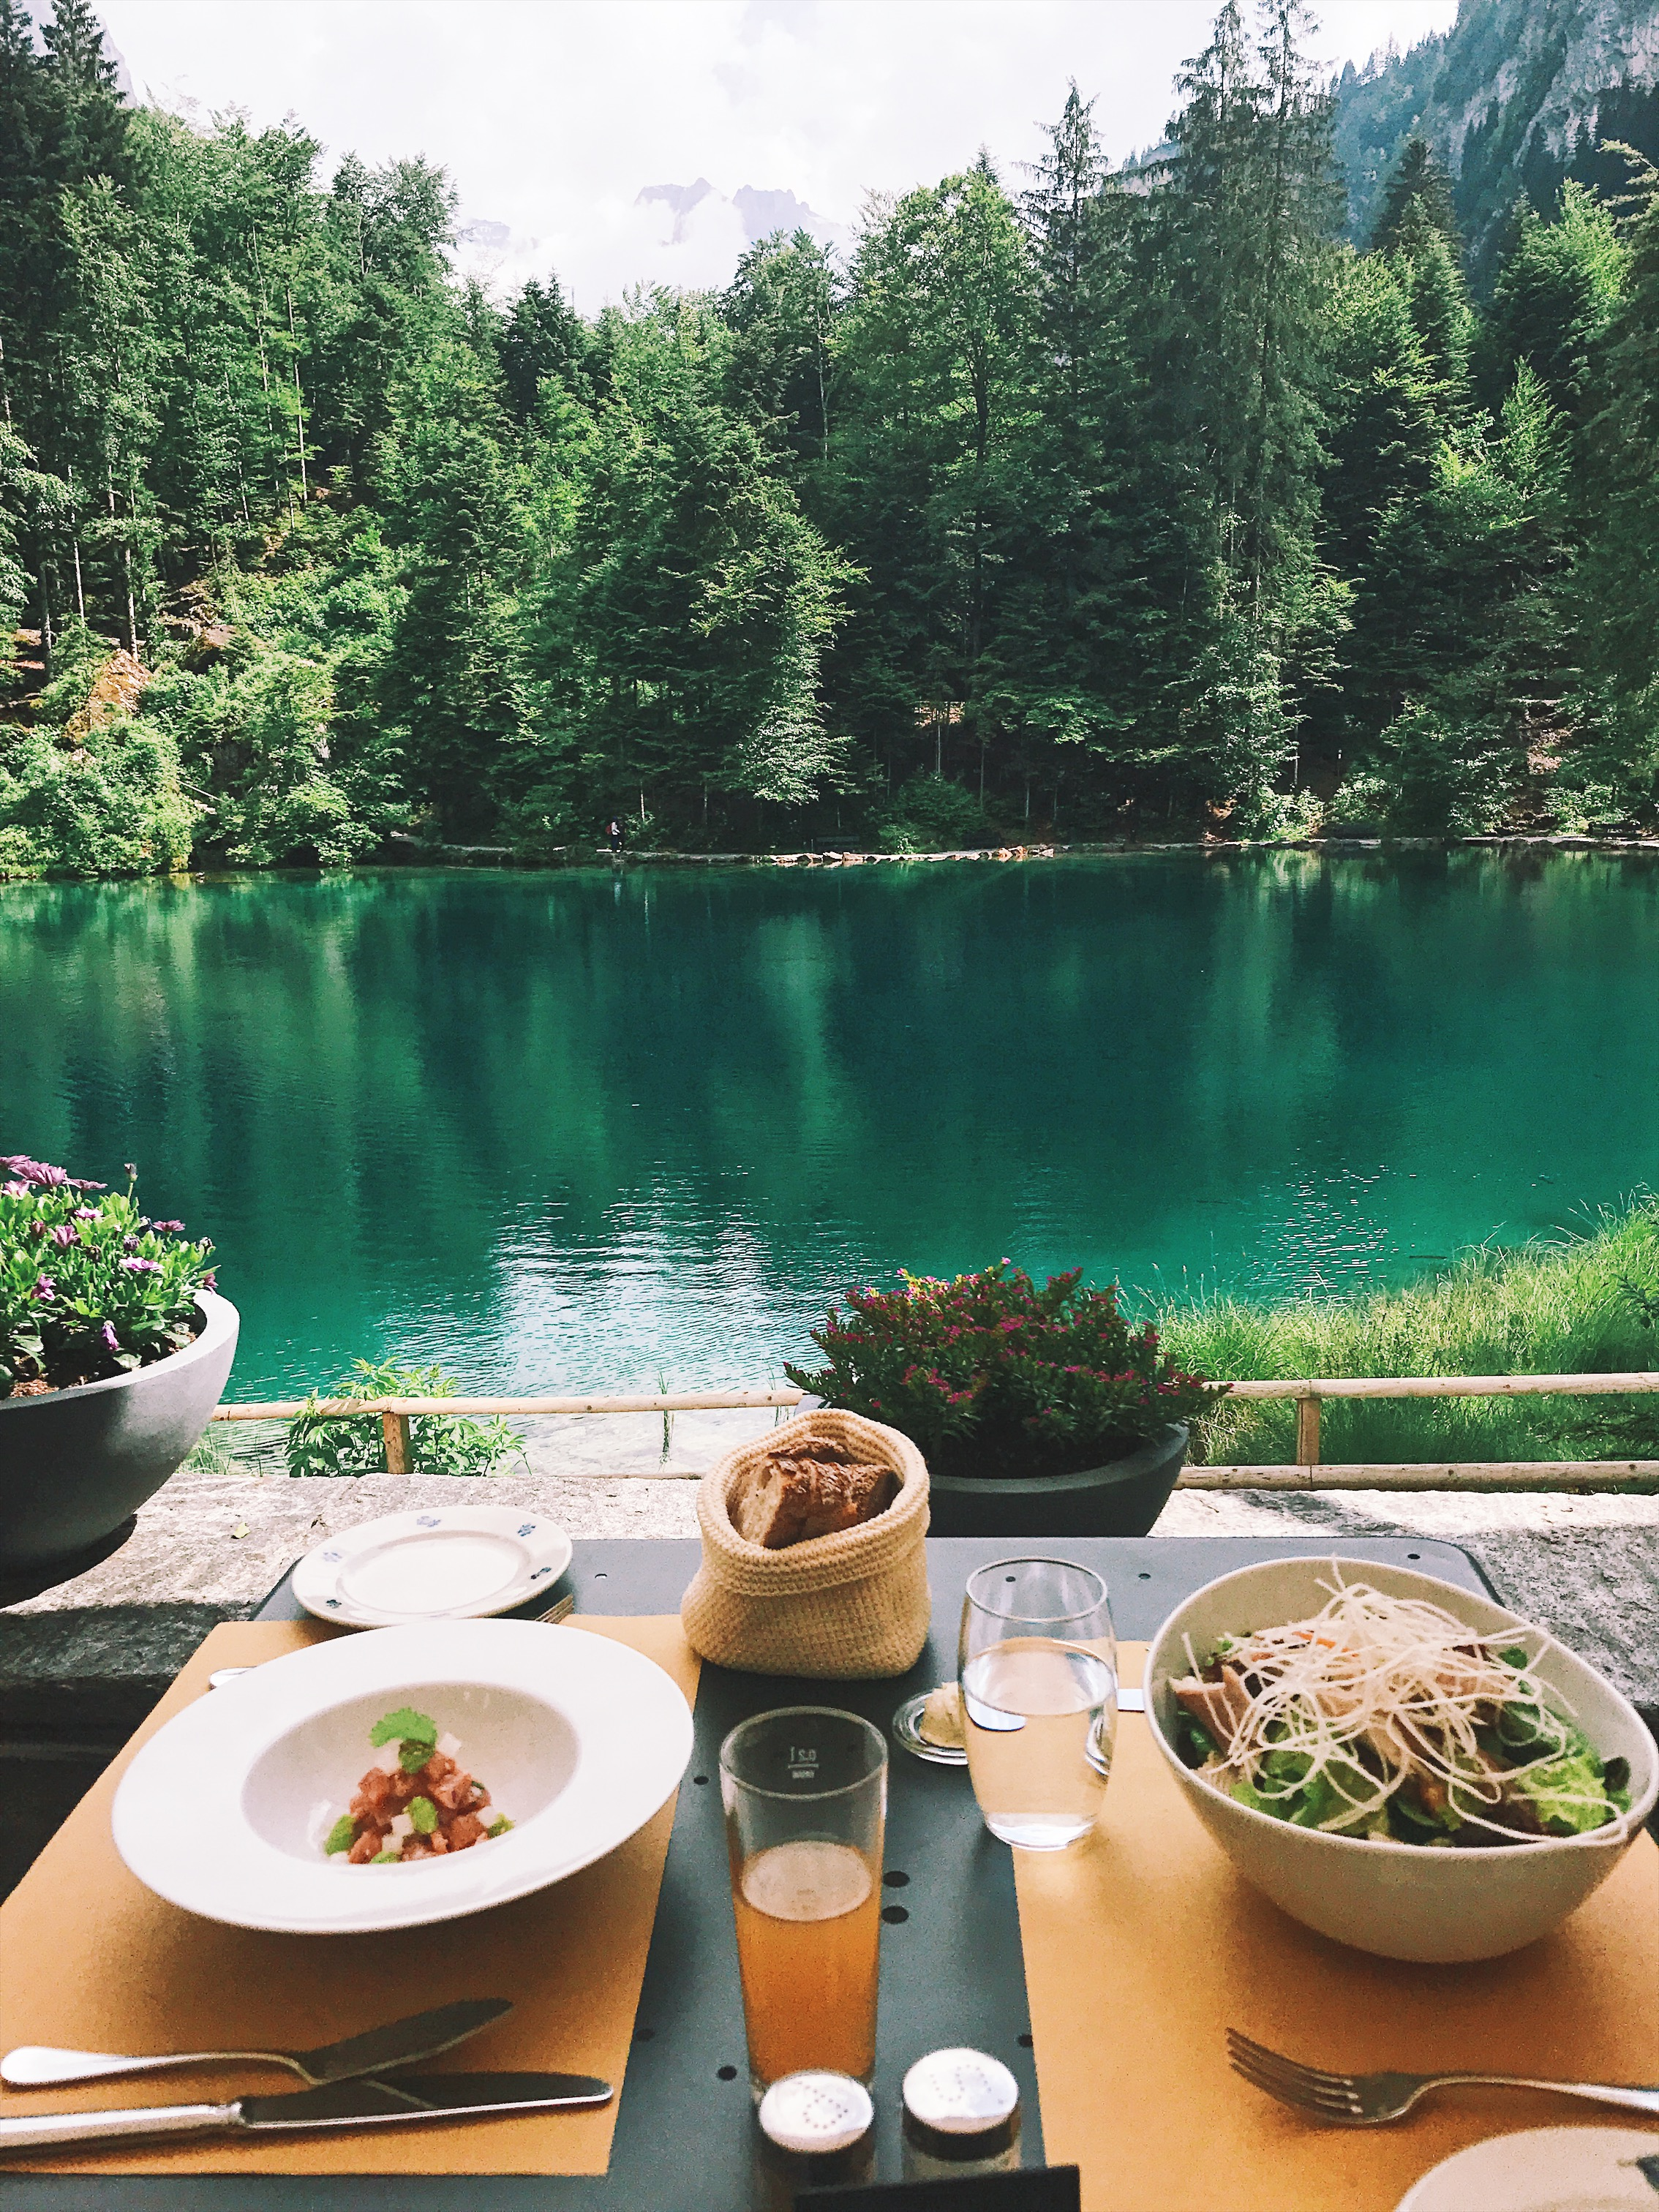 Lunch at the Blausee restaurant